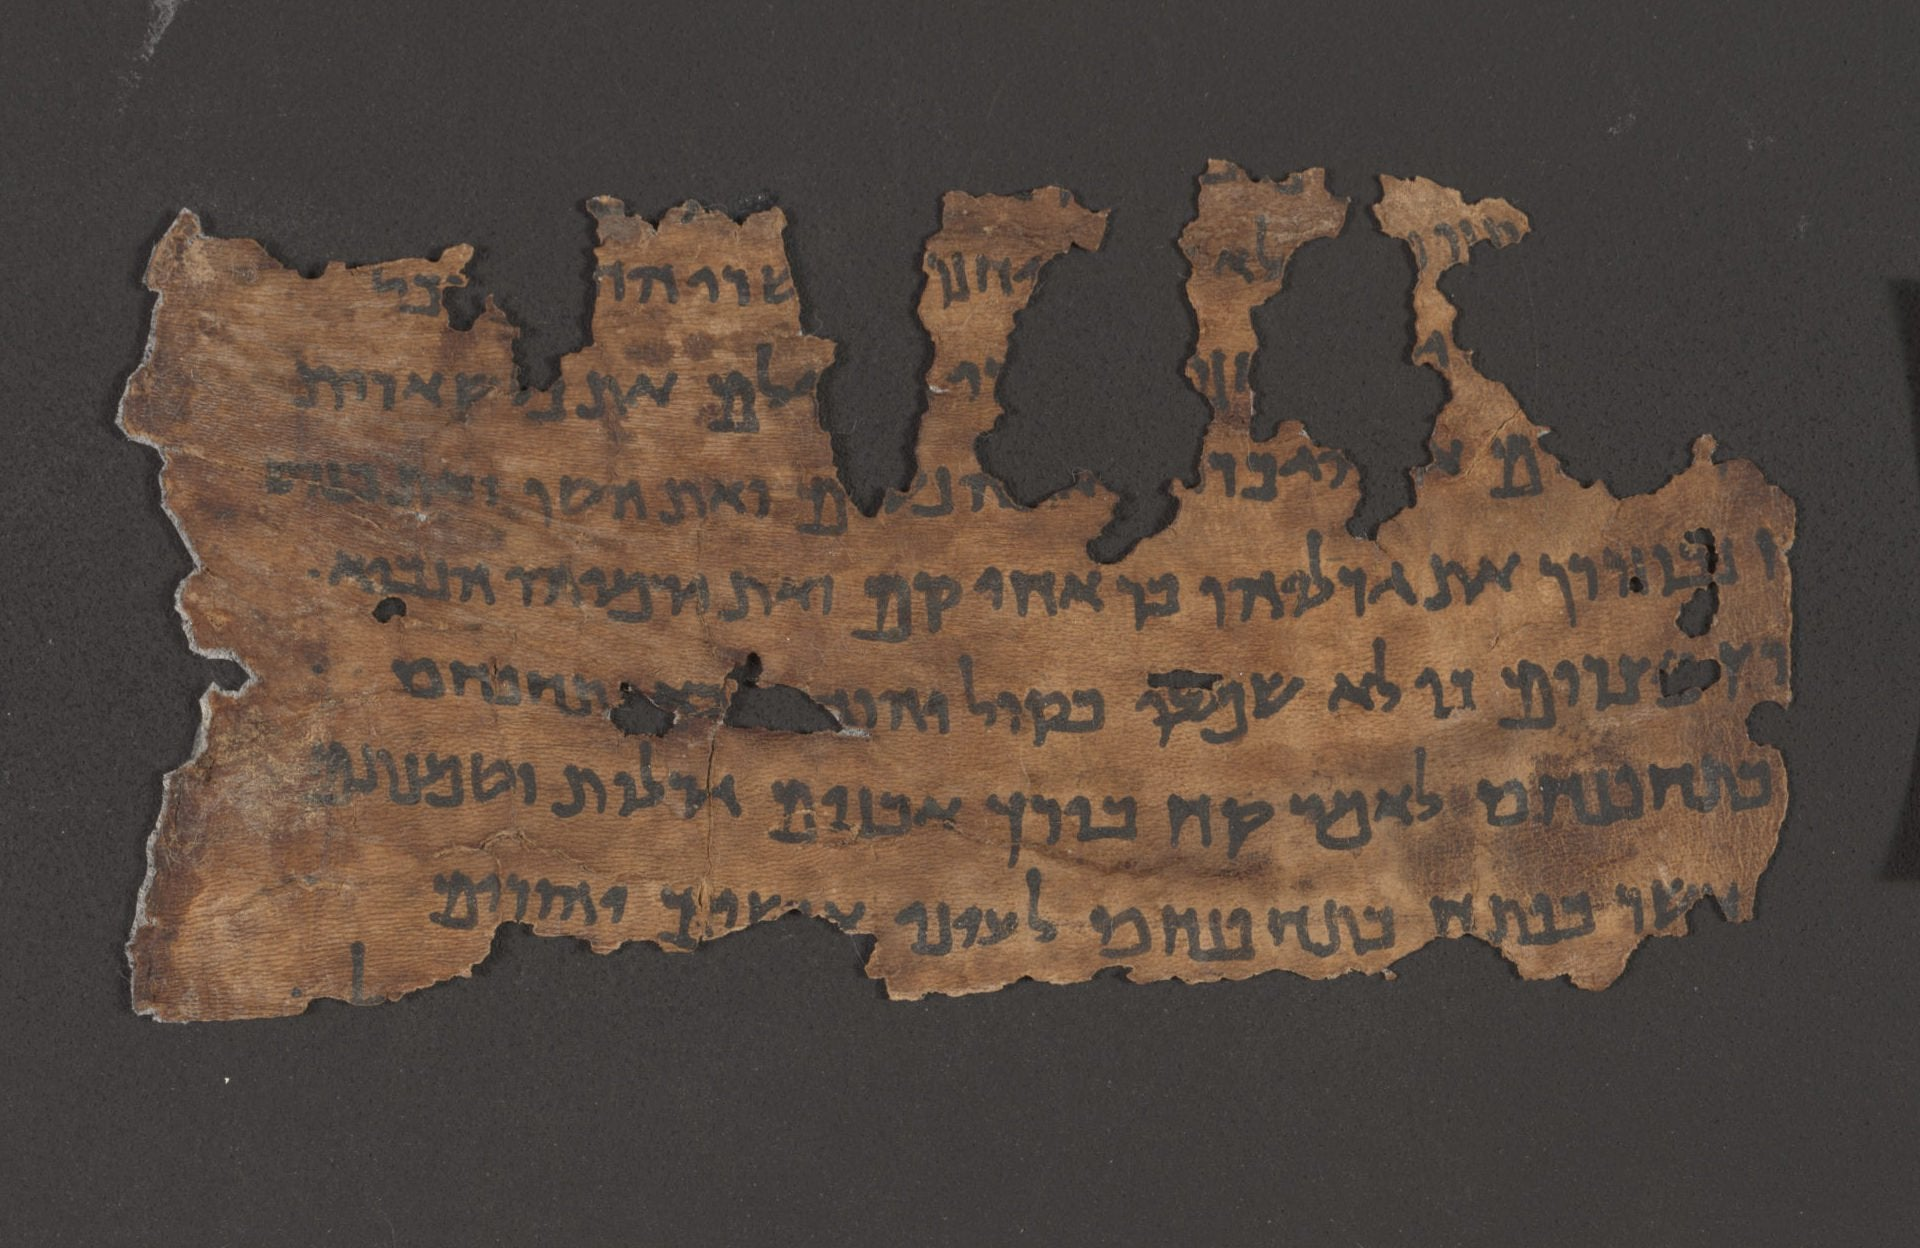 The latest Dead Sea Scrolls find adds mystery to the biblical origin